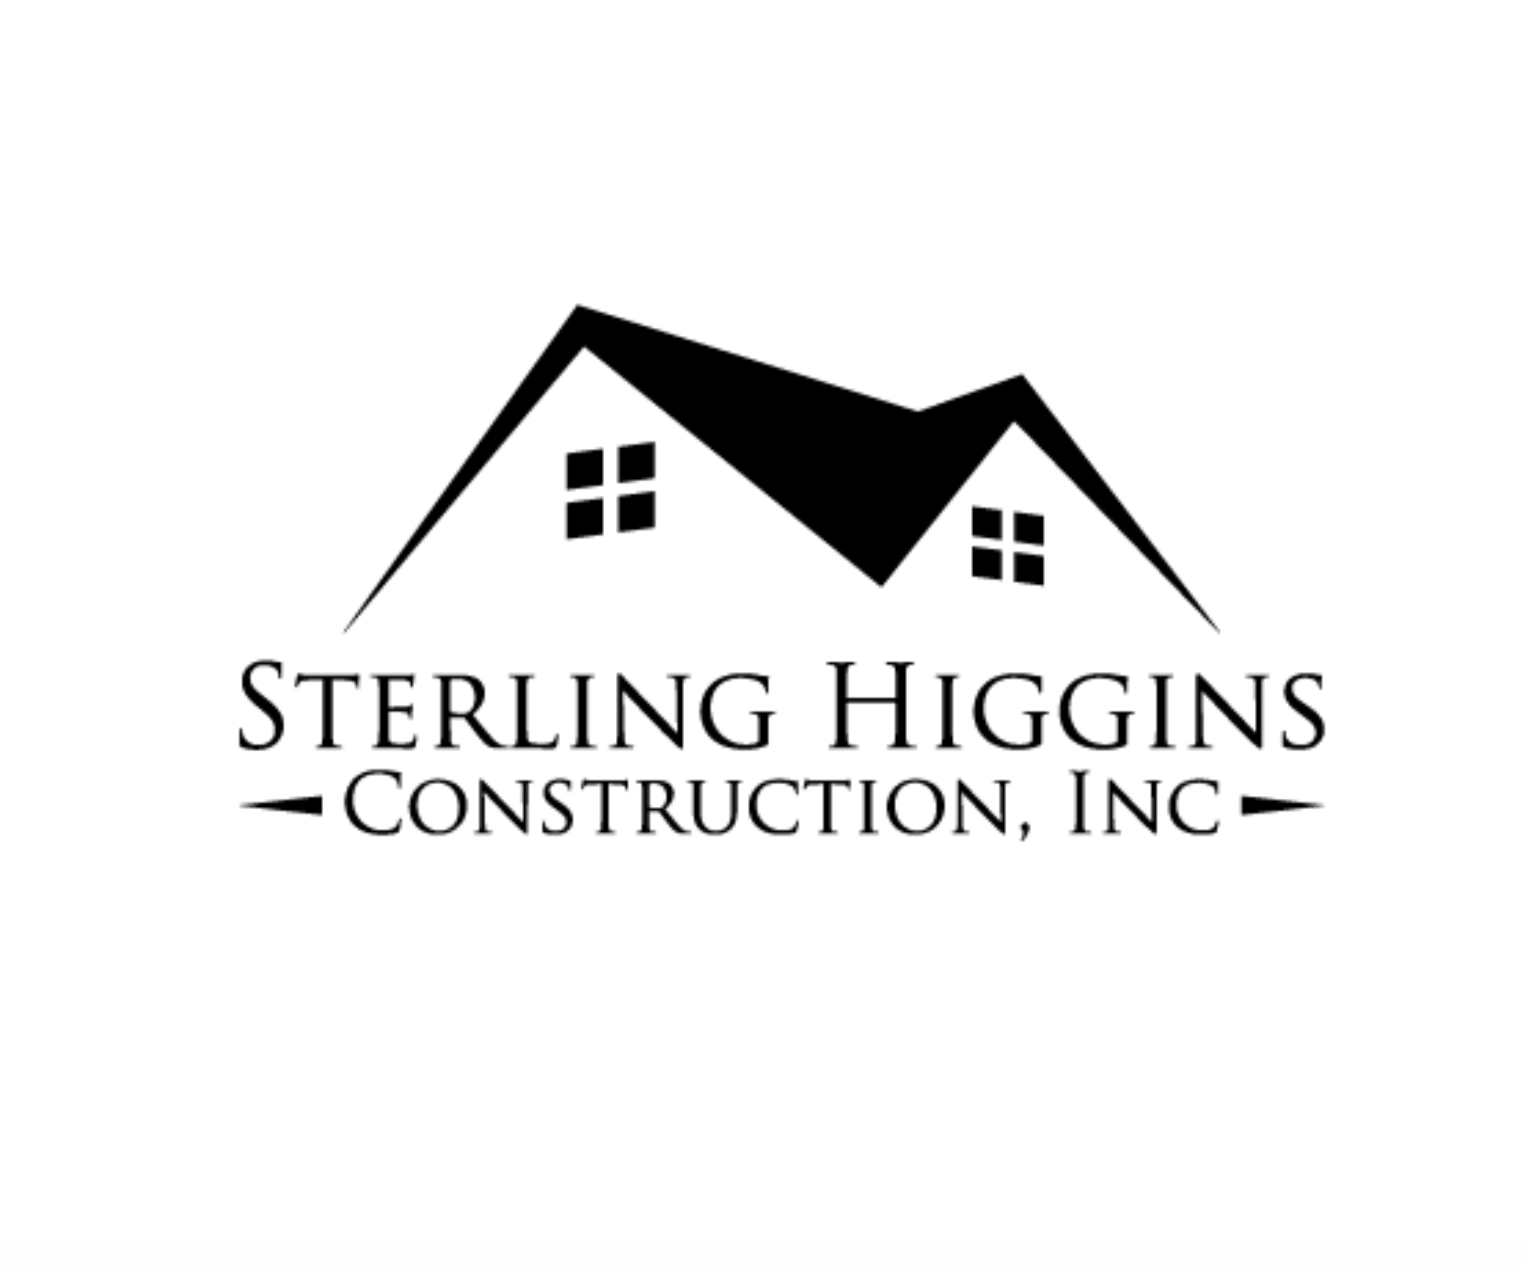 Logo by Tailored Logo - Sterling Higgins